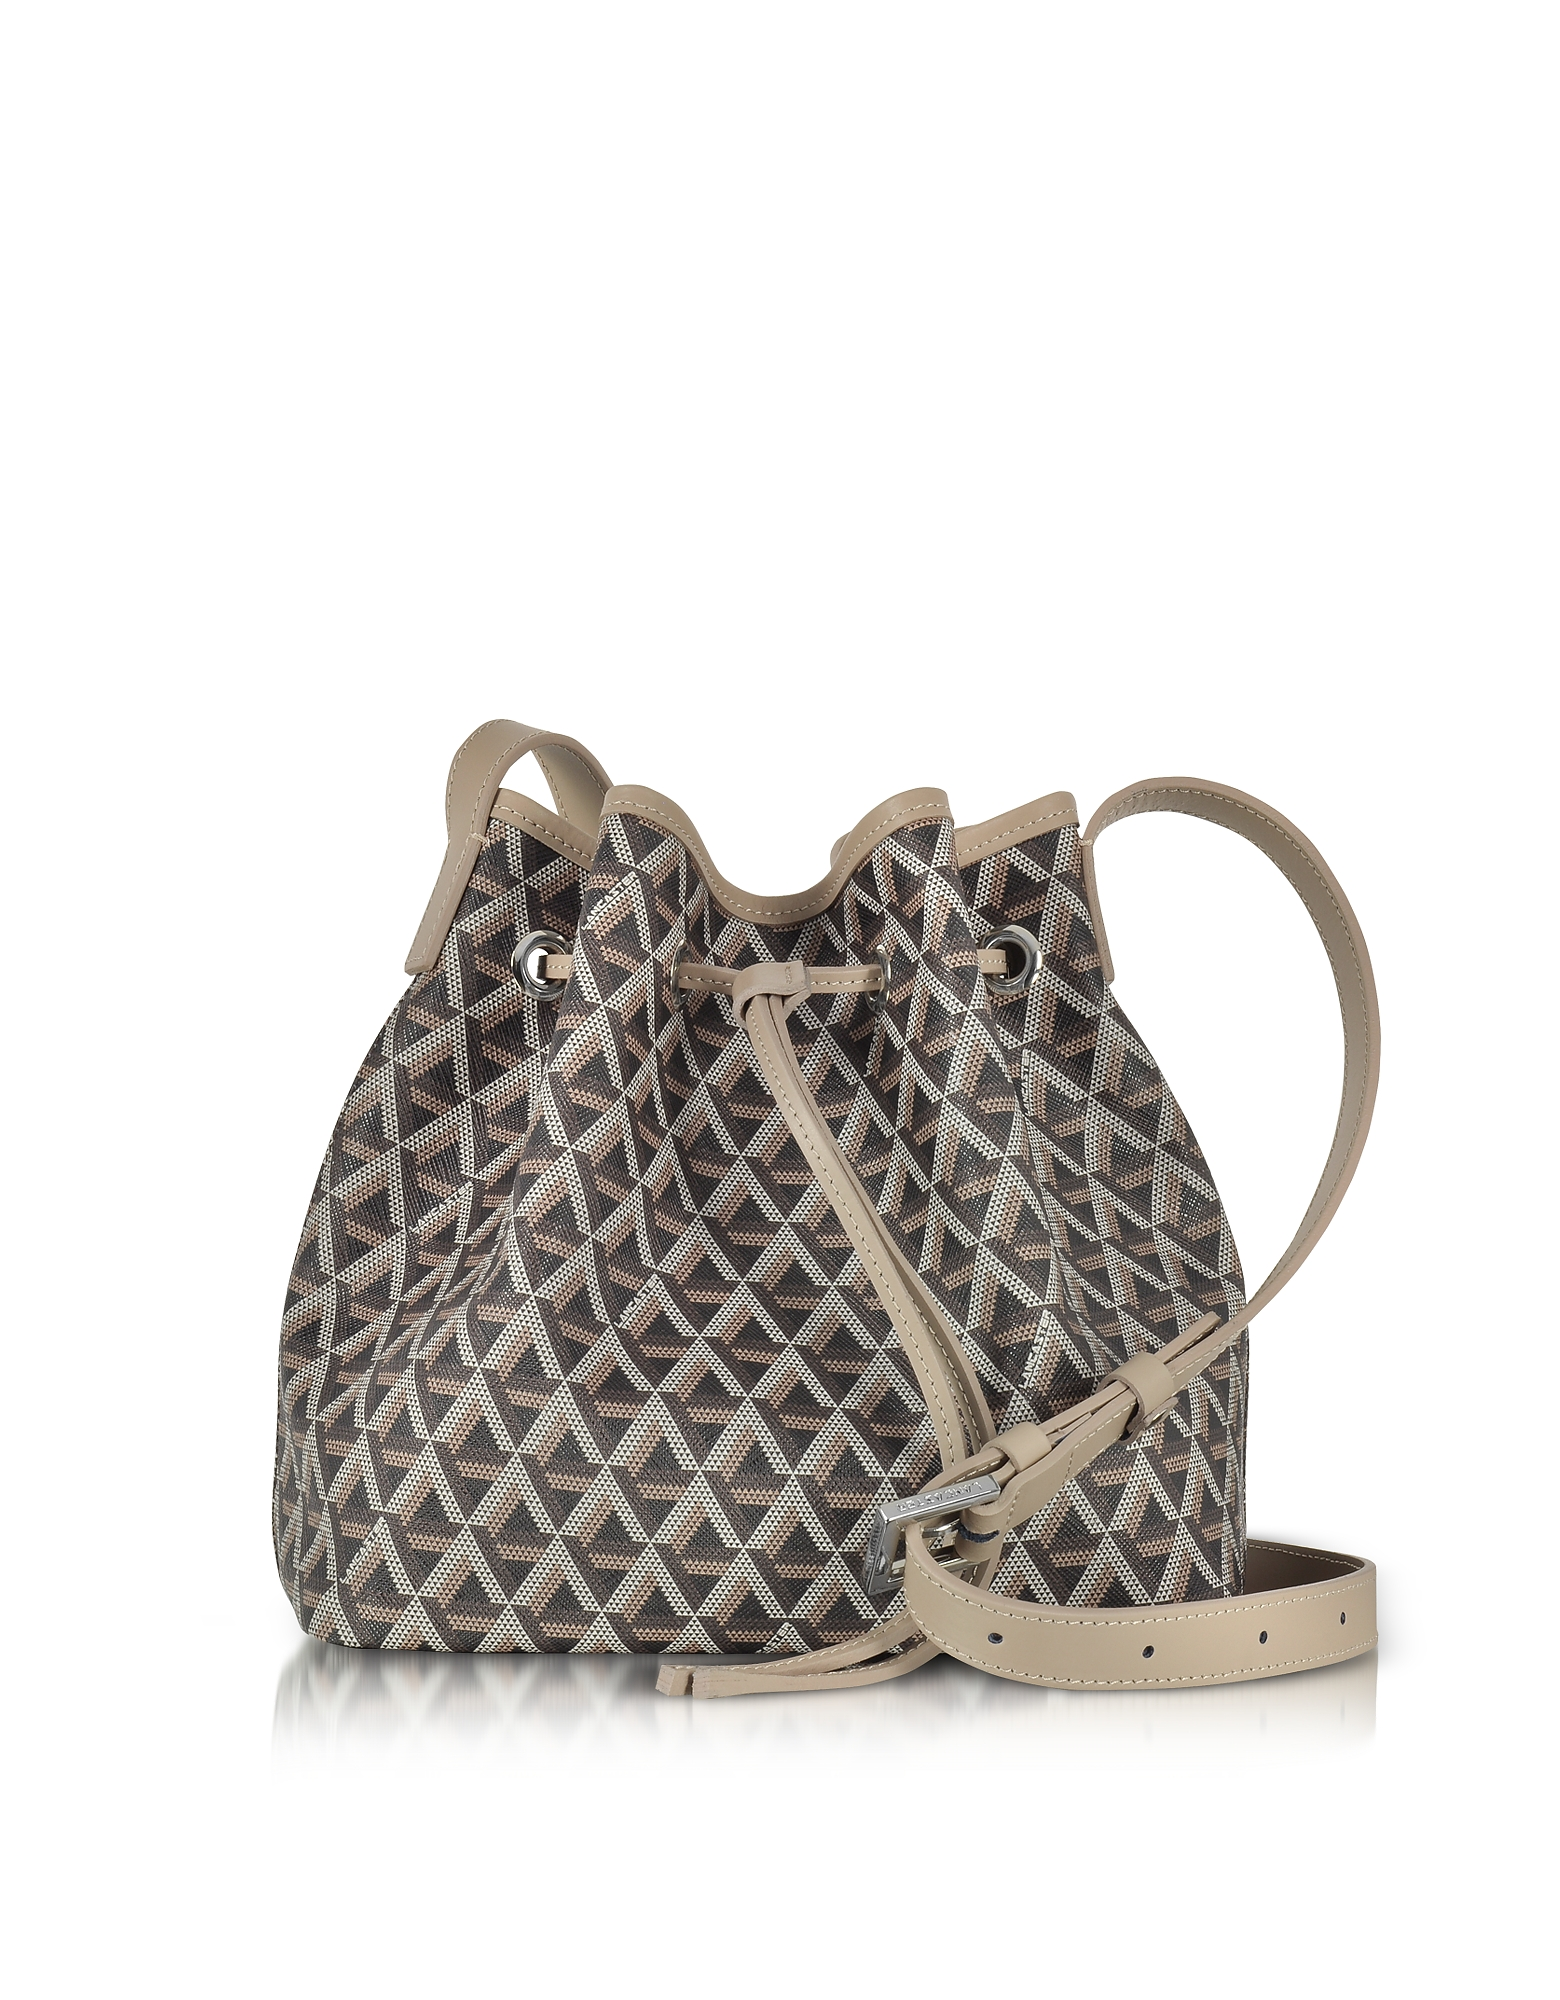 Lancaster Paris Handbags, Ikon Brown & Nude Coated Canvas and Leather Small Bucket Bag